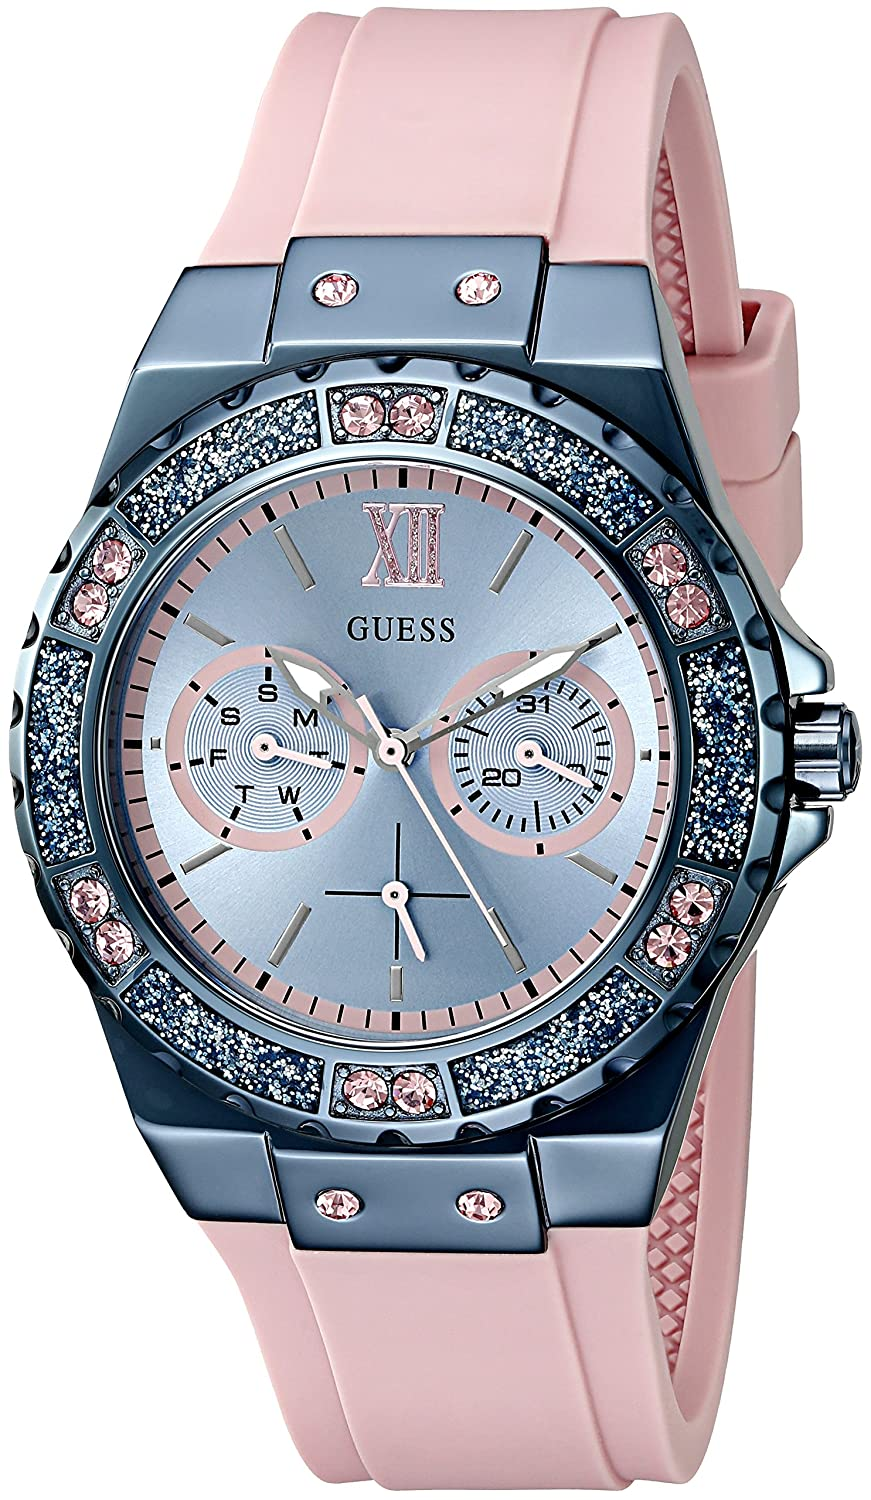 Amazon.com: GUESS Womens U0775L5 Sporty Blue Stainless Steel Watch with Multi-function Dial and Pink Strap Buckle: Watches